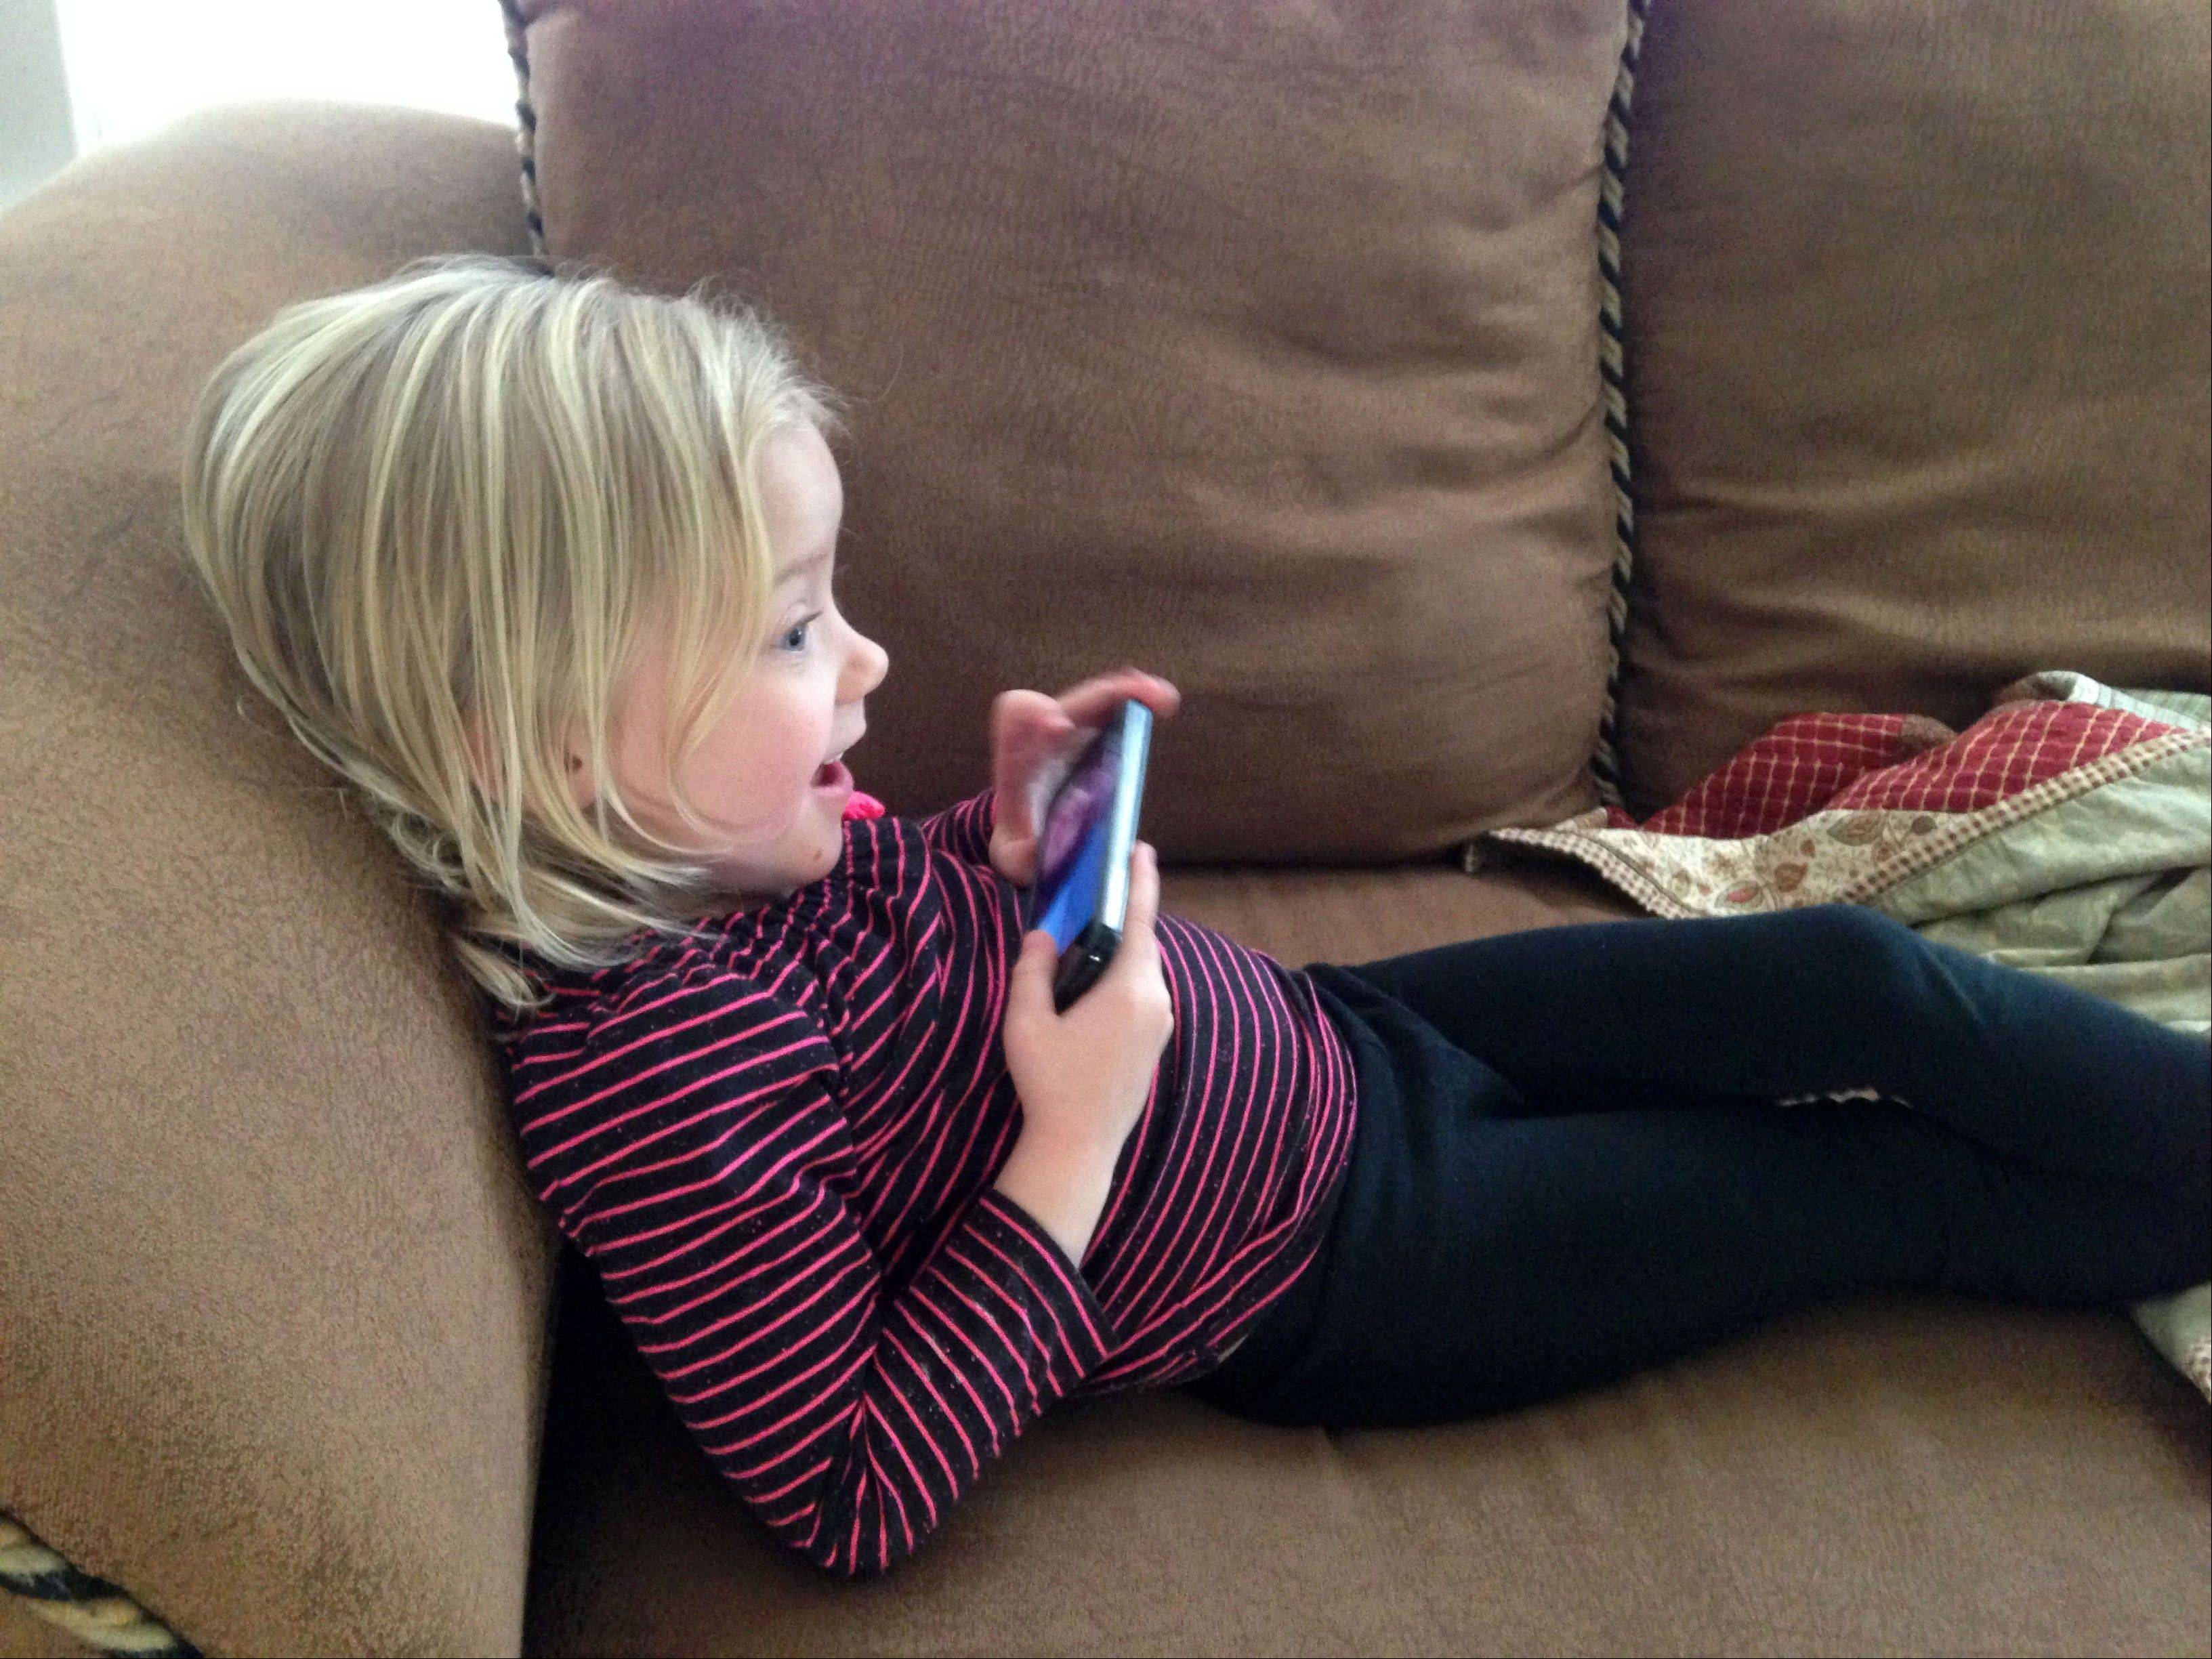 Paisley Koskie, 3, uses Facetime at her home in Wichita, Kansas to chat with her cousin, who lives in Oklahoma. An increasing number of parents of toddlers are finding their tech-savvy 2- and 3-year-old kids are obsessed with selfies